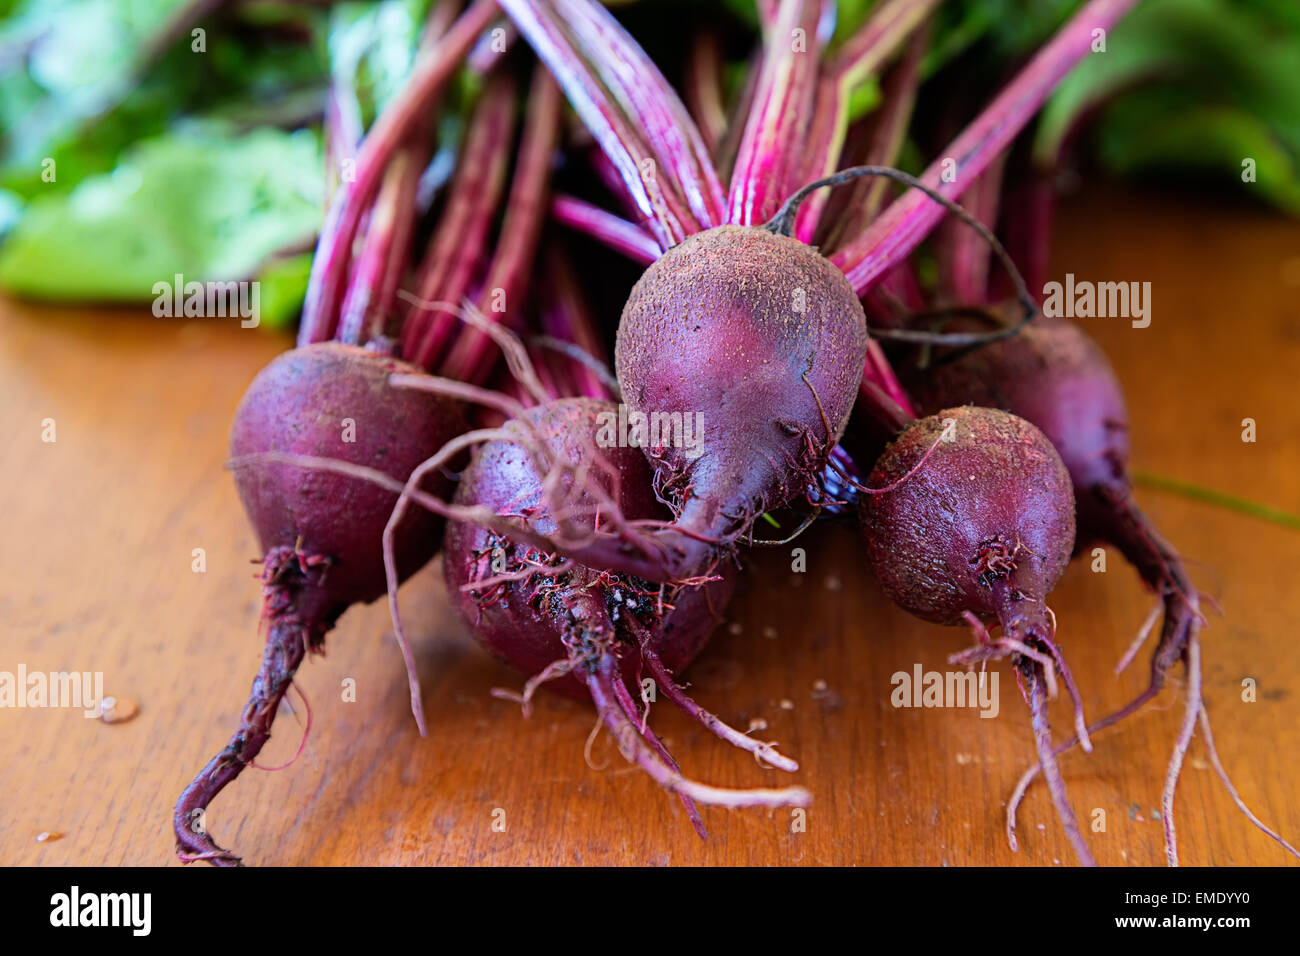 Fresh garden beets on a wooden table. - Stock Image